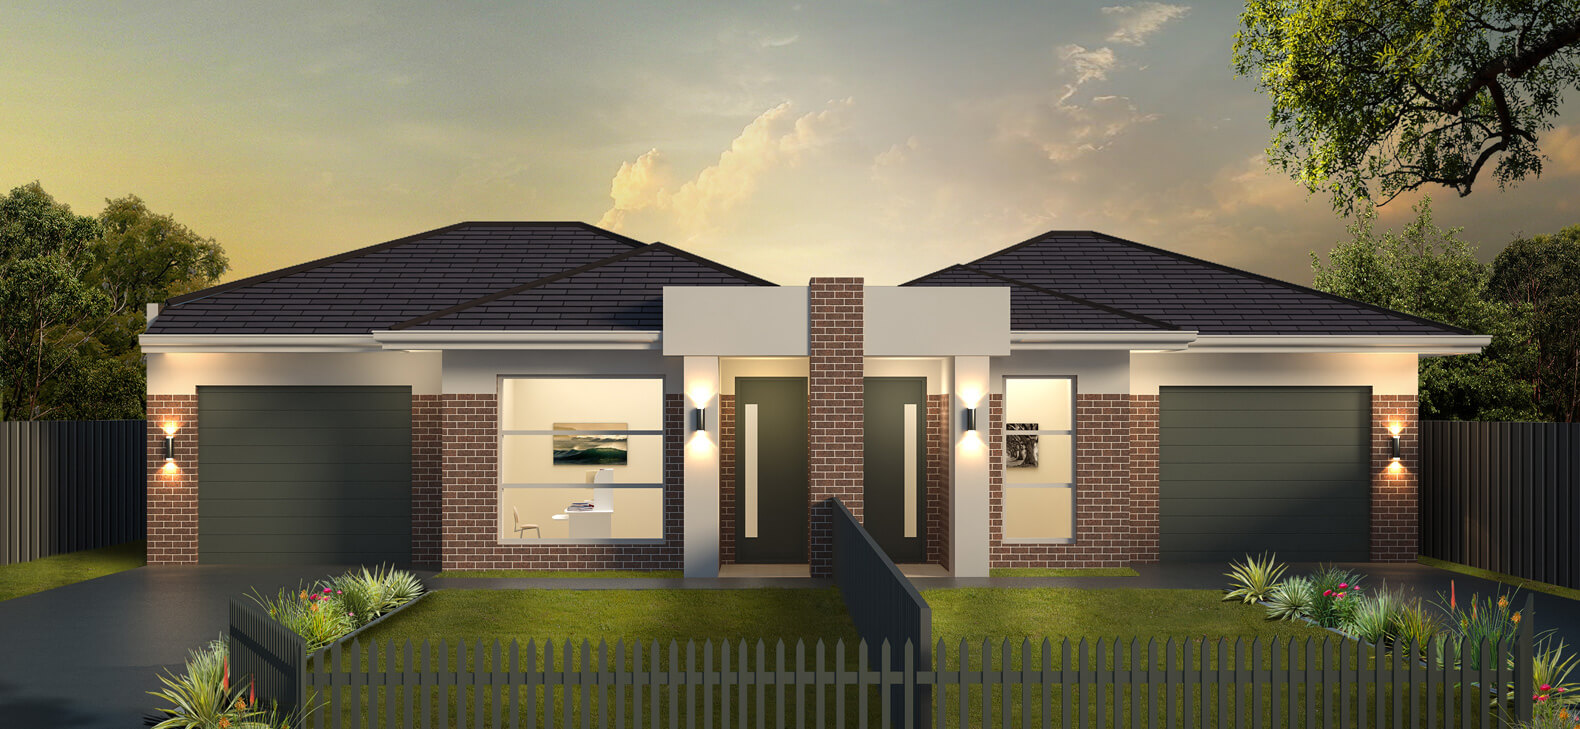 3D Architectural Rendering,3d Rendering